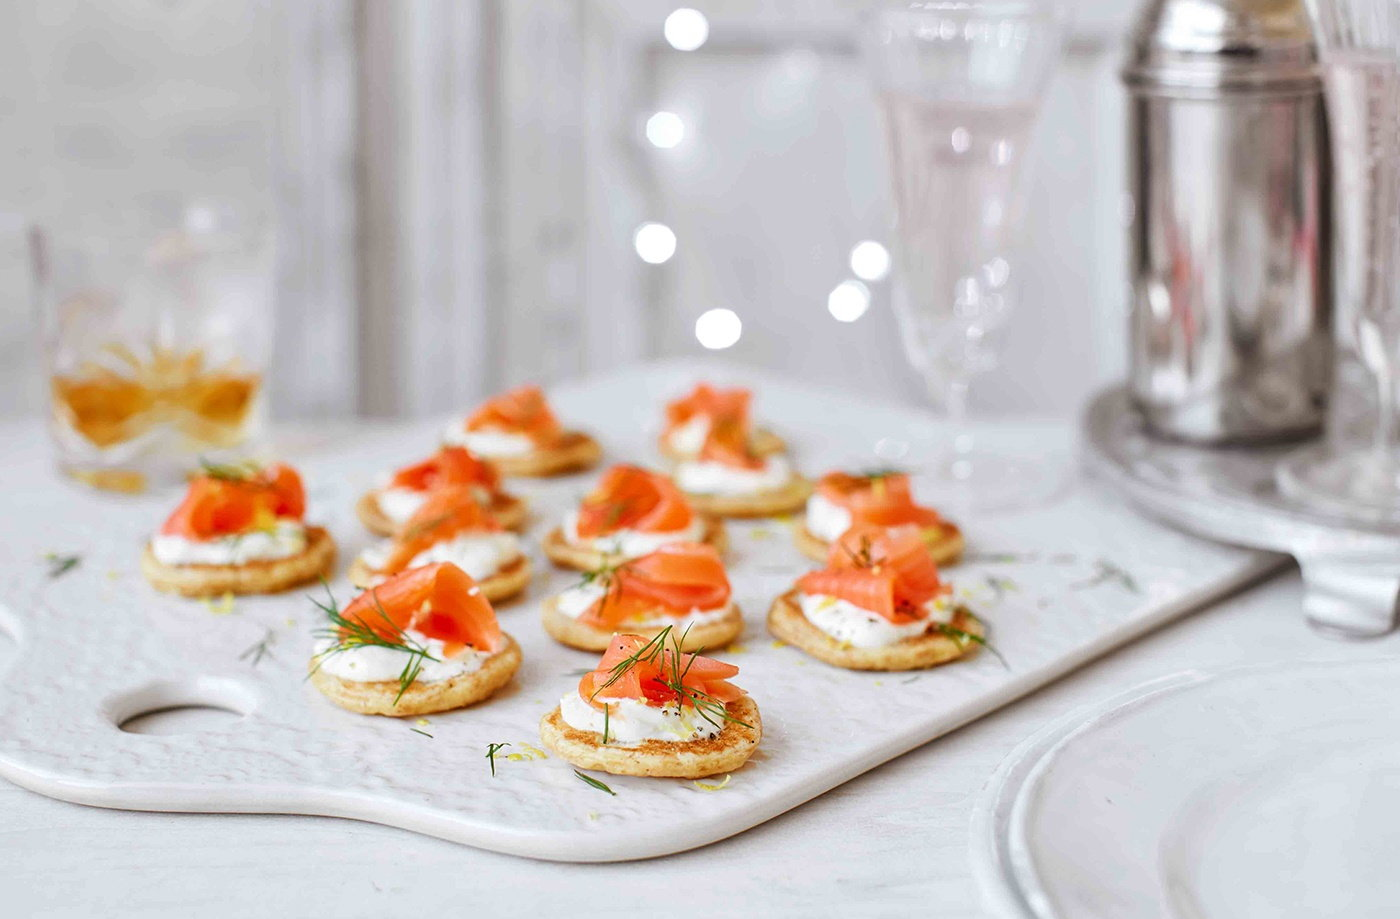 New year 39 s eve party food ideas tesco real food for Canape dessert ideas